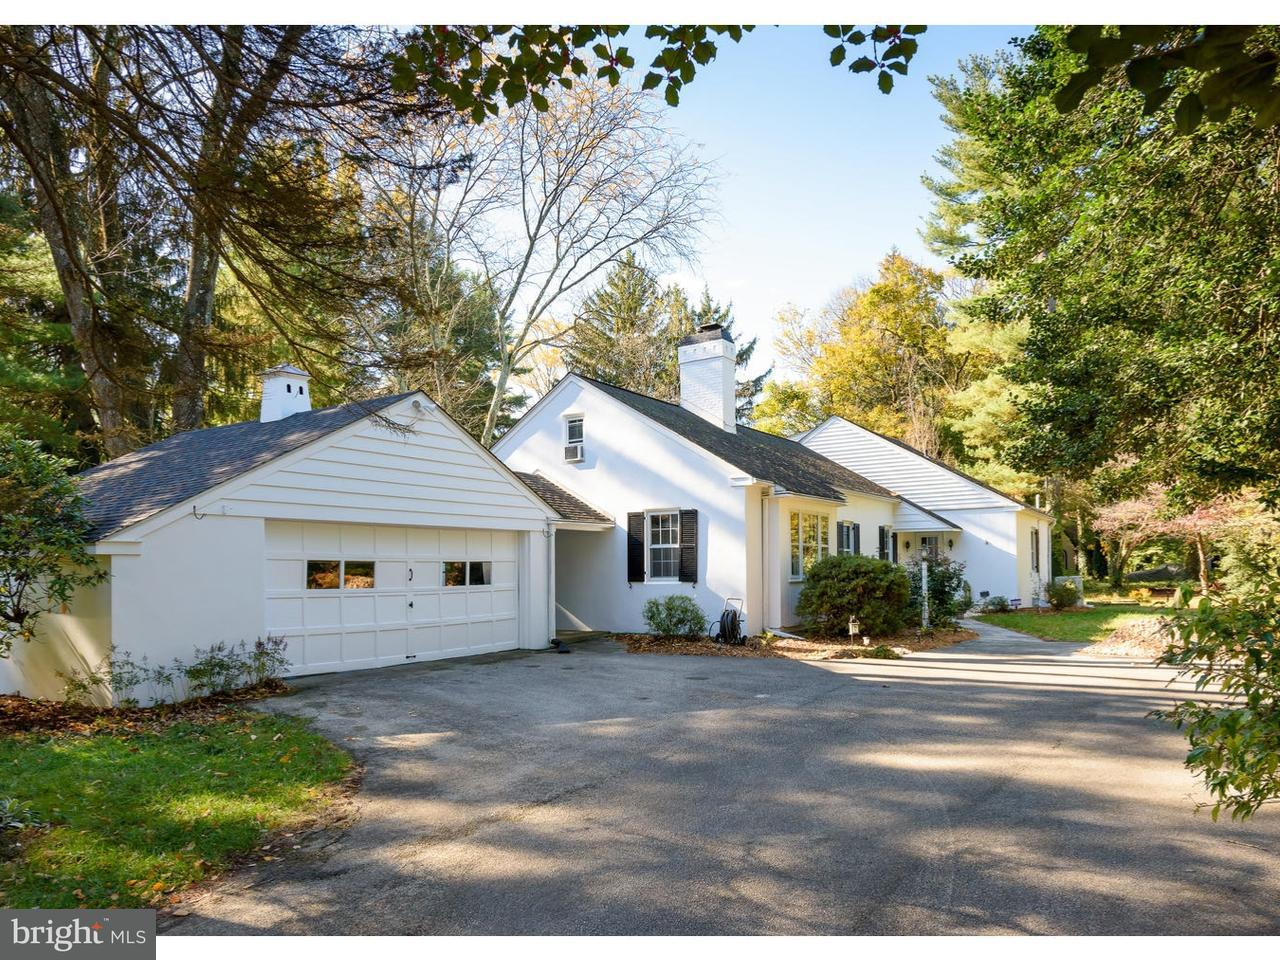 Single Family Home for Sale at 209 HIGHLAND Avenue Wallingford, Pennsylvania 19086 United States